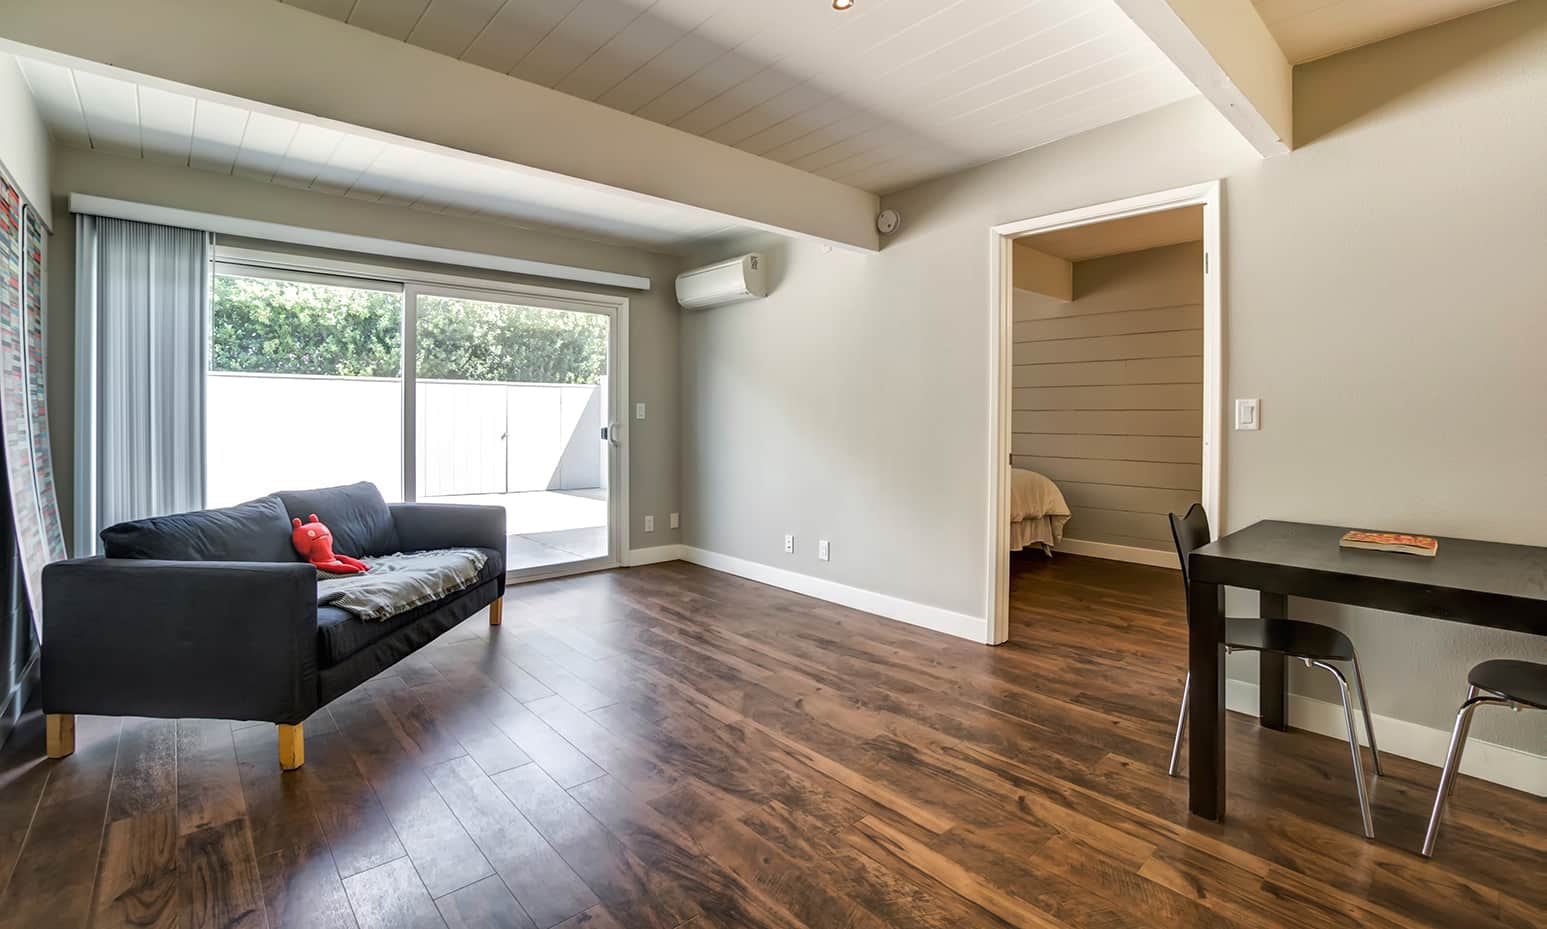 Parallel Apartments apartments in Sunnyvale CA to rent photo 11